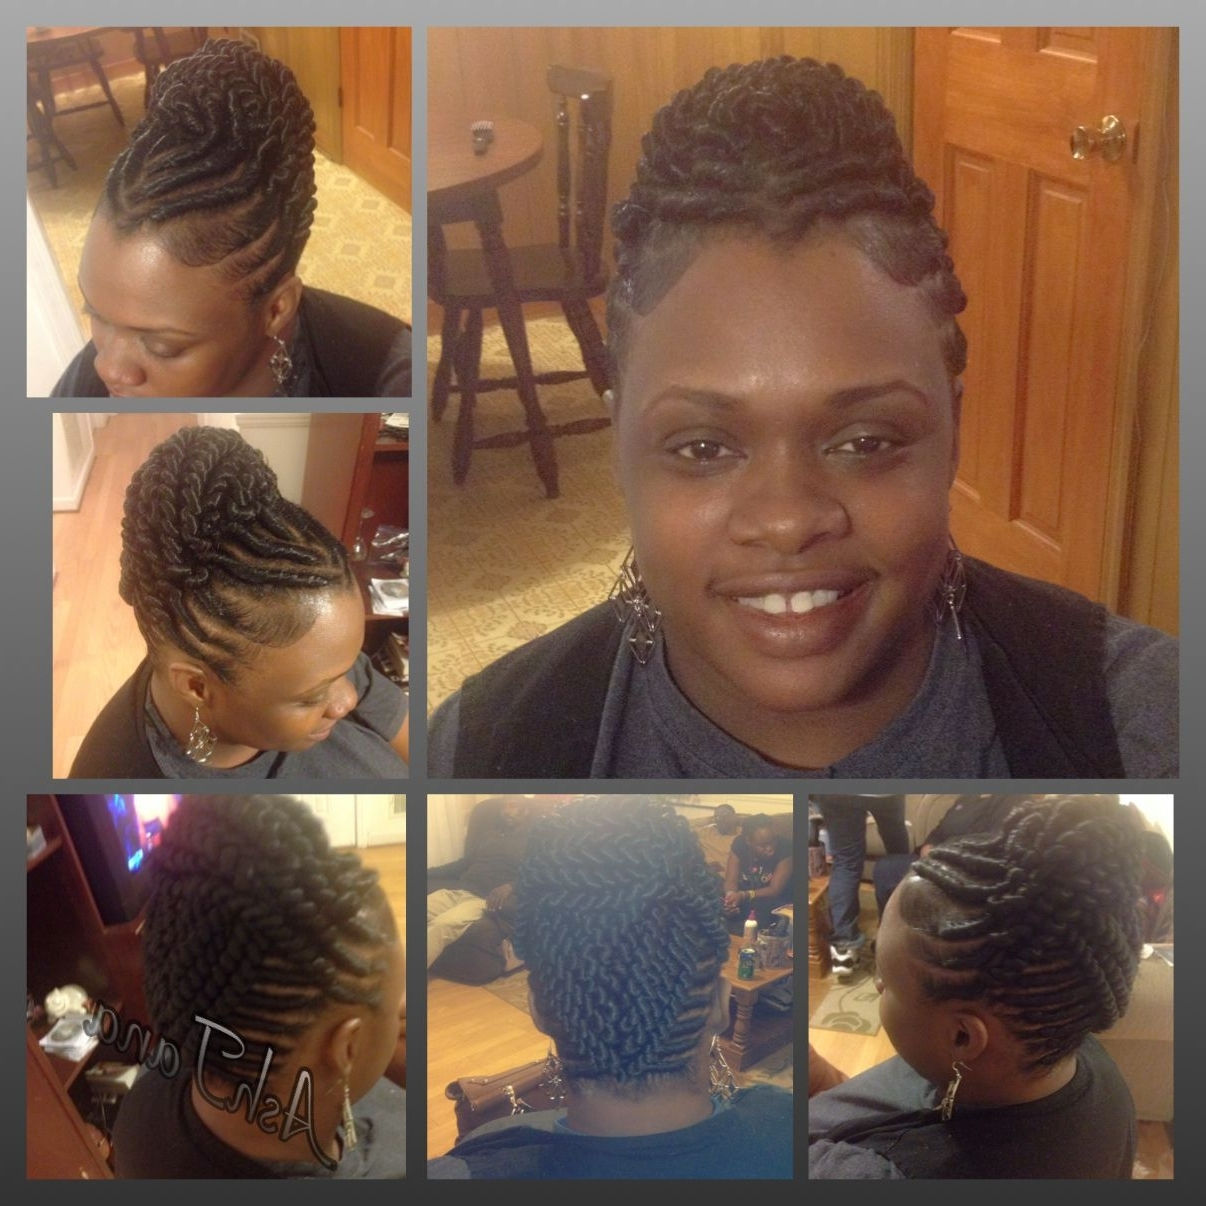 Unbelievable Stuffed Twist Hair Style Flat Pic Of Black Hairstyles Intended For Stuffed Twist Updo Hairstyles (Gallery 10 of 15)